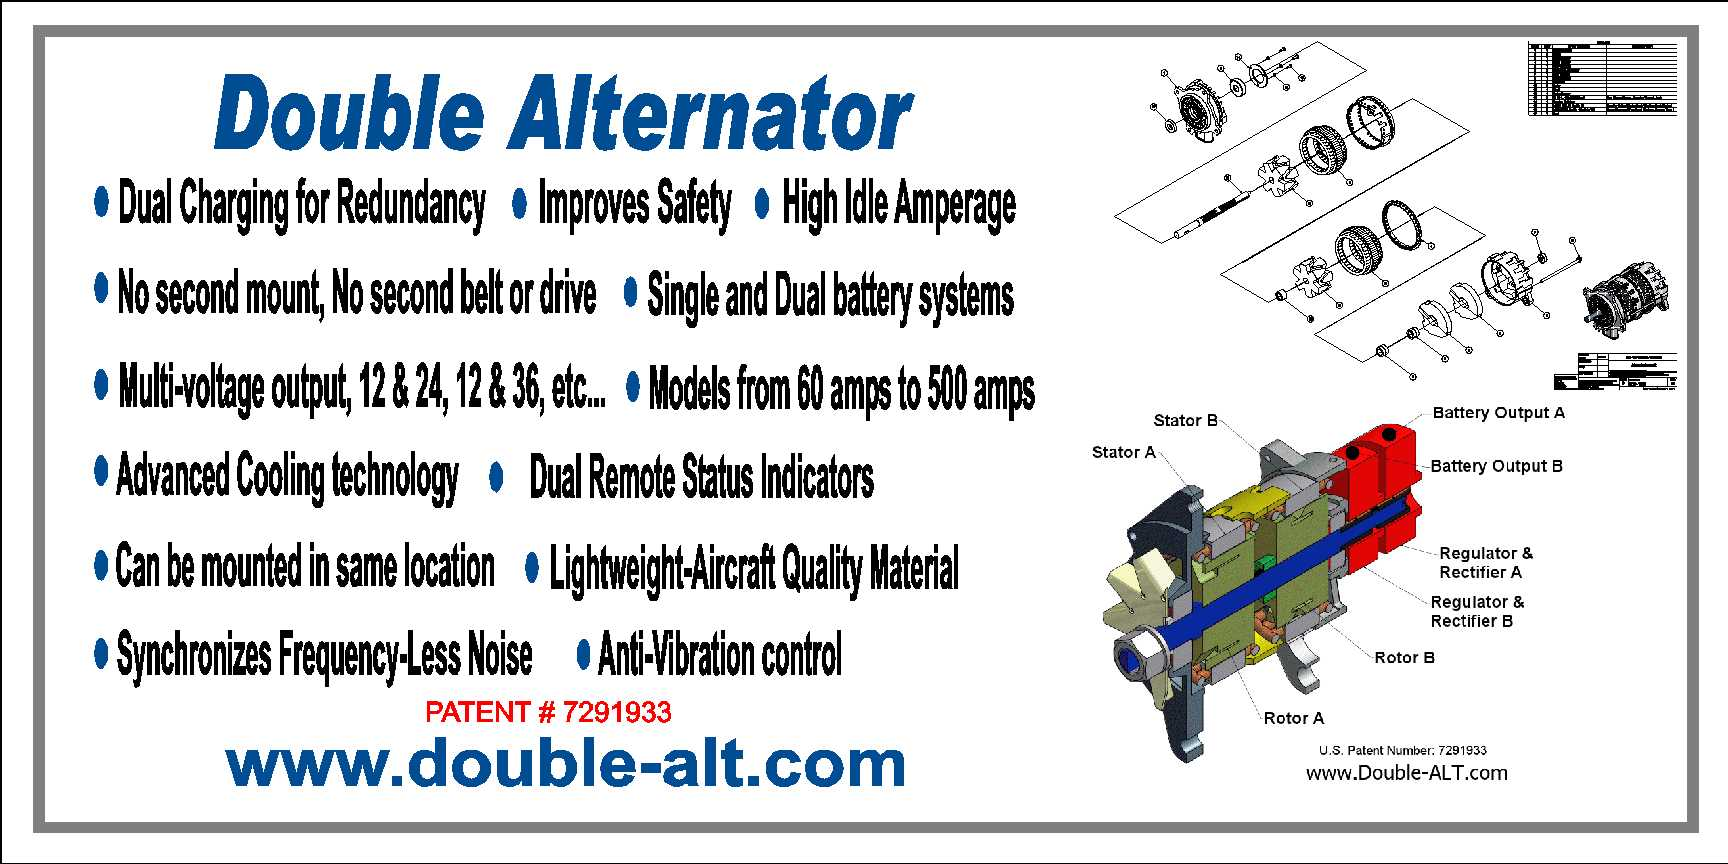 Dual Alternators Wiring Diagram 10 Si Ambulance Alternator Just Schematic Rh Lailamaed Co Uk 10si Delco 7si